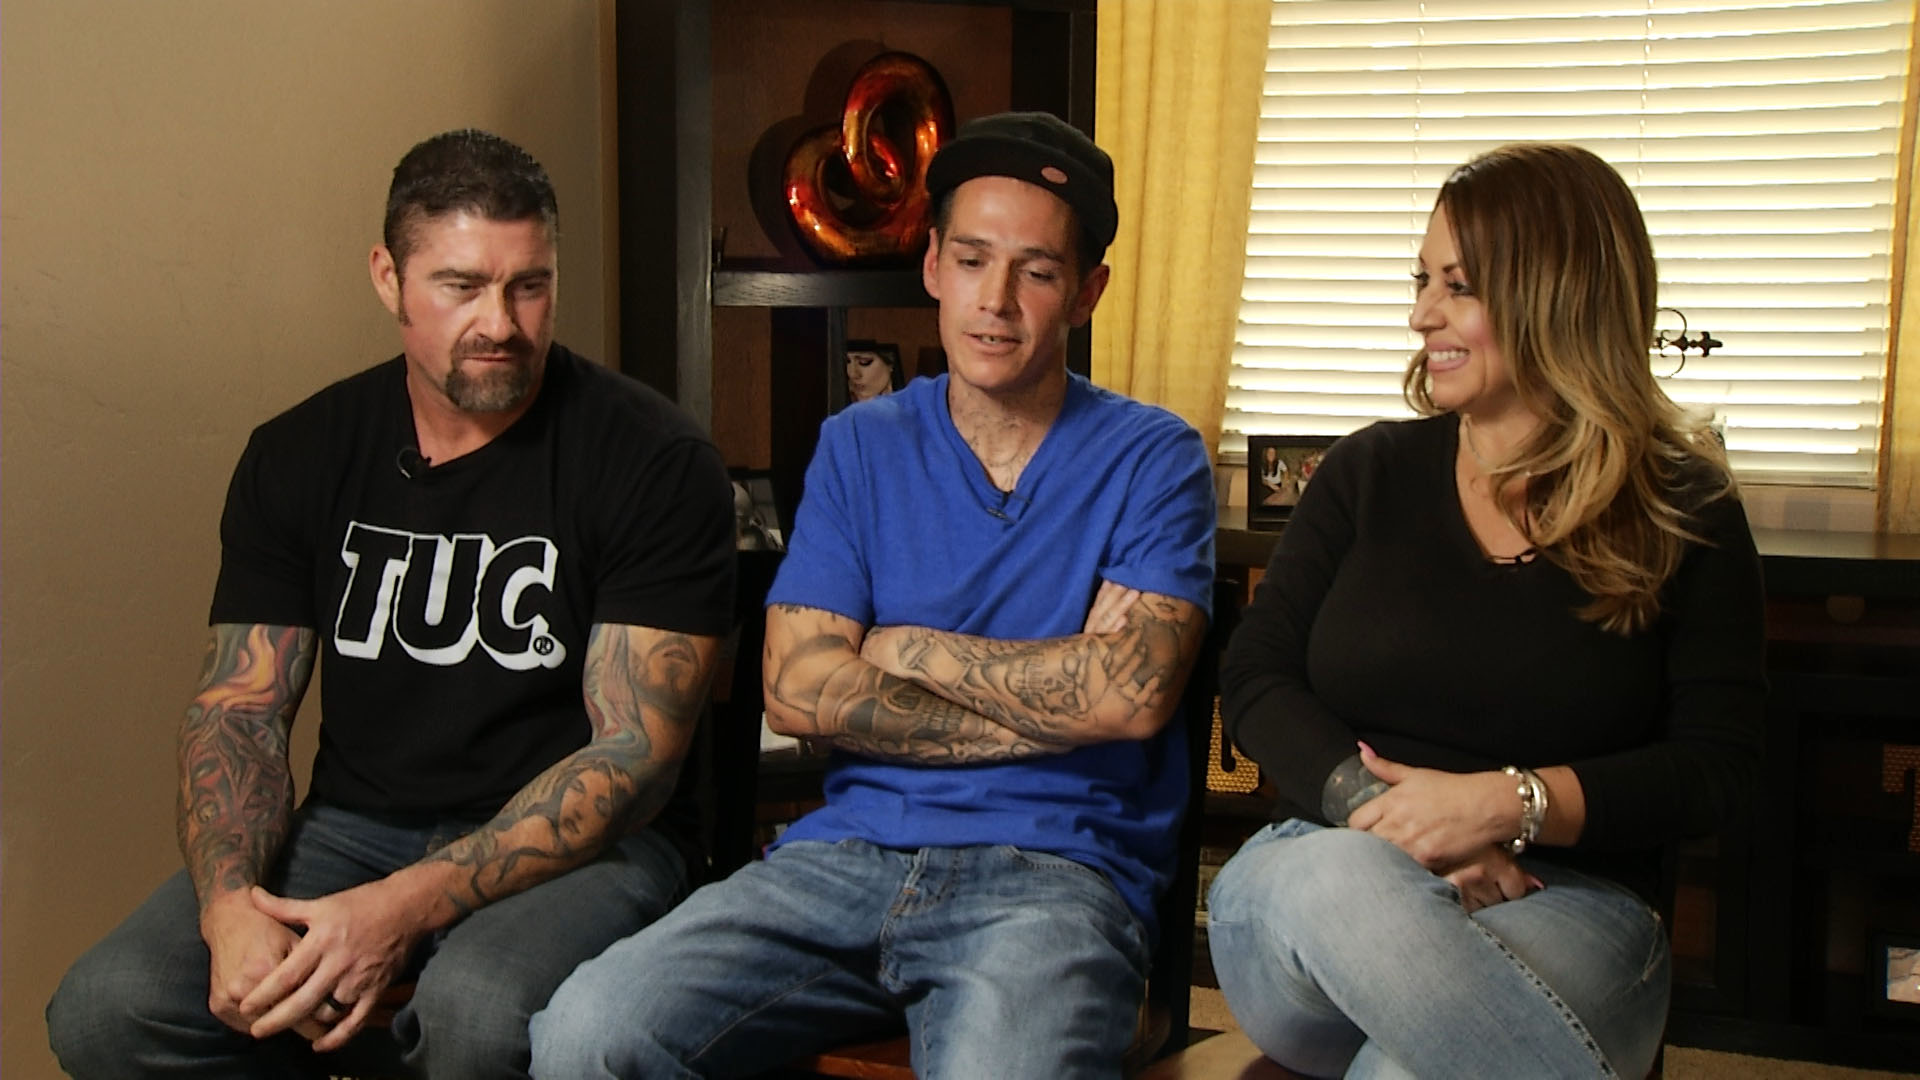 A Tucson stepfather, son and mother explain the challenges they've all faced as the adult son worked to overcome opioid addiction.